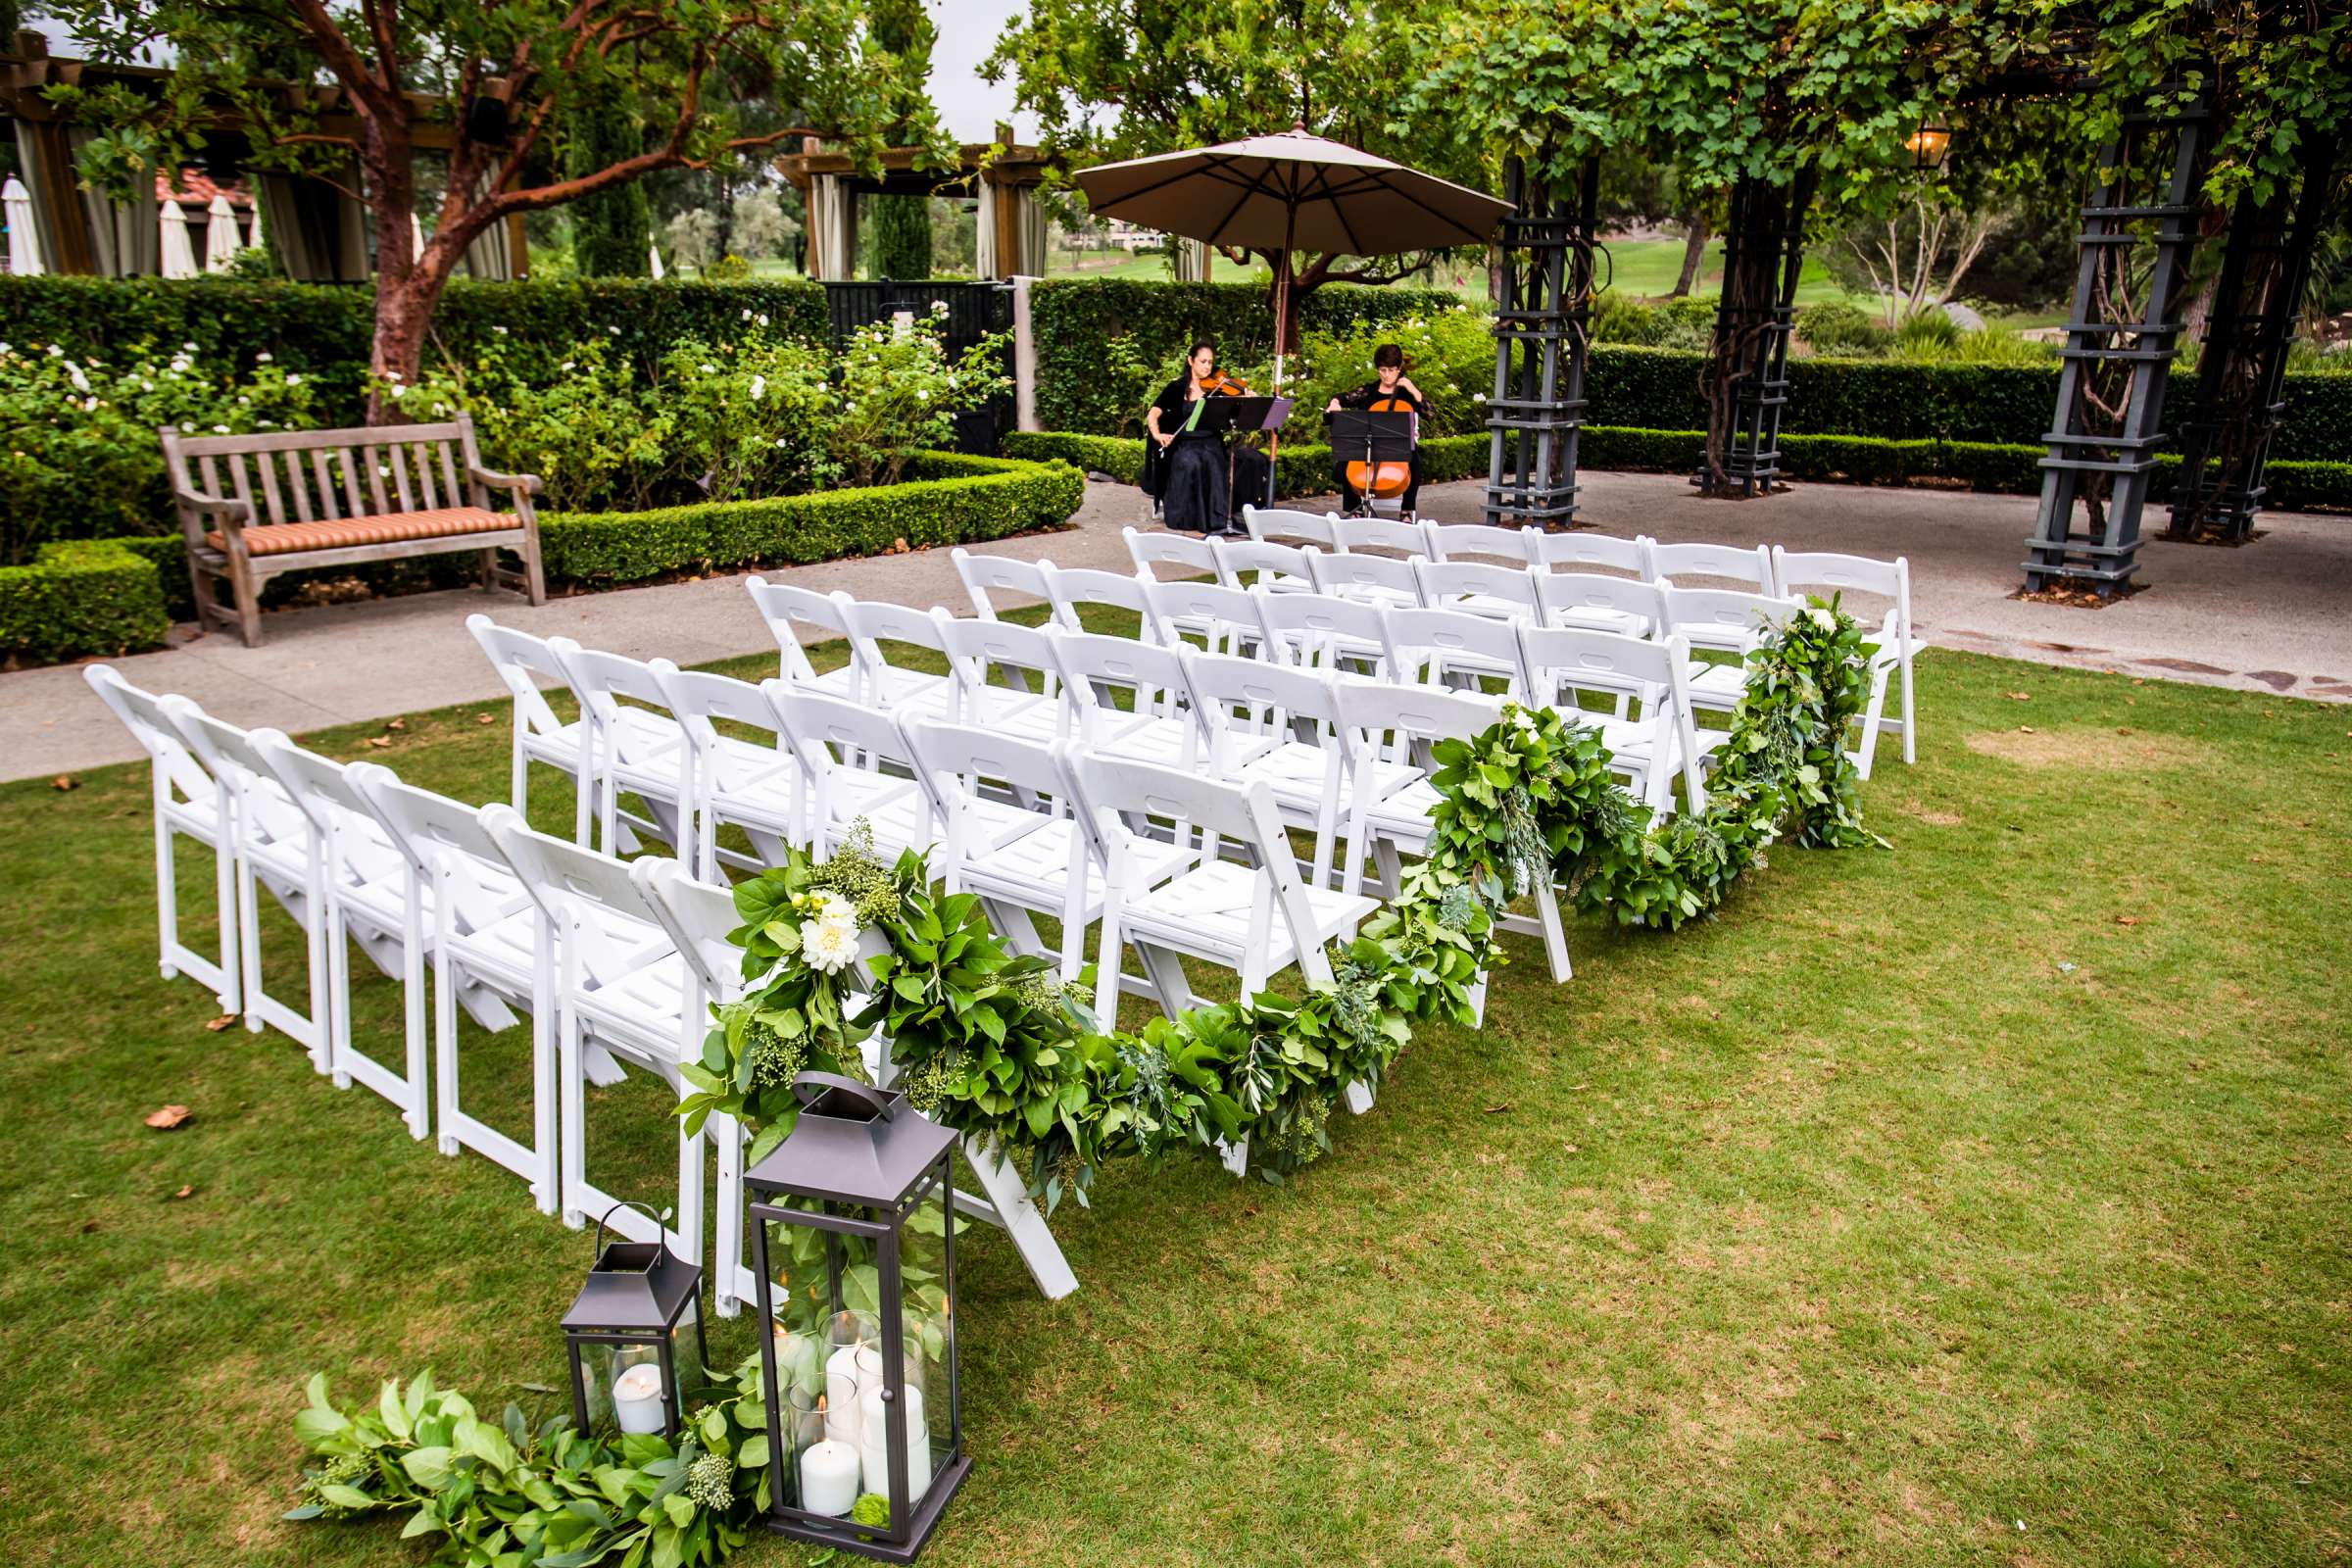 Rancho Bernardo Inn Wedding coordinated by Très Chic Events, Stefania and Nicholas Wedding Photo #95 by True Photography